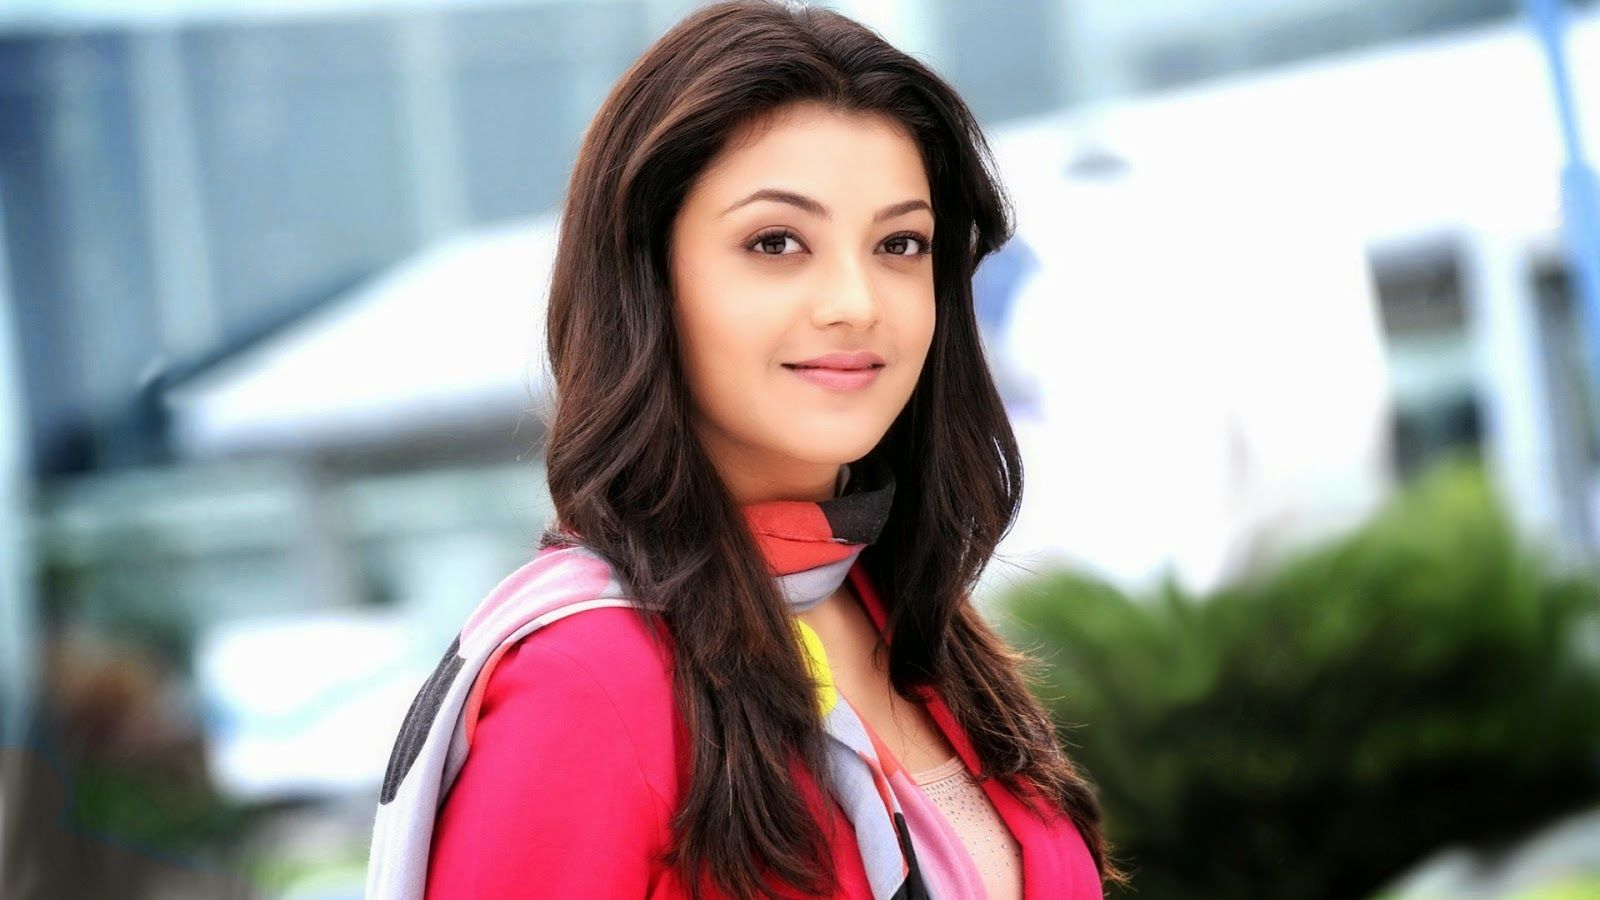 collection of kajal images on hdwallpapers 1024×768 kajal images